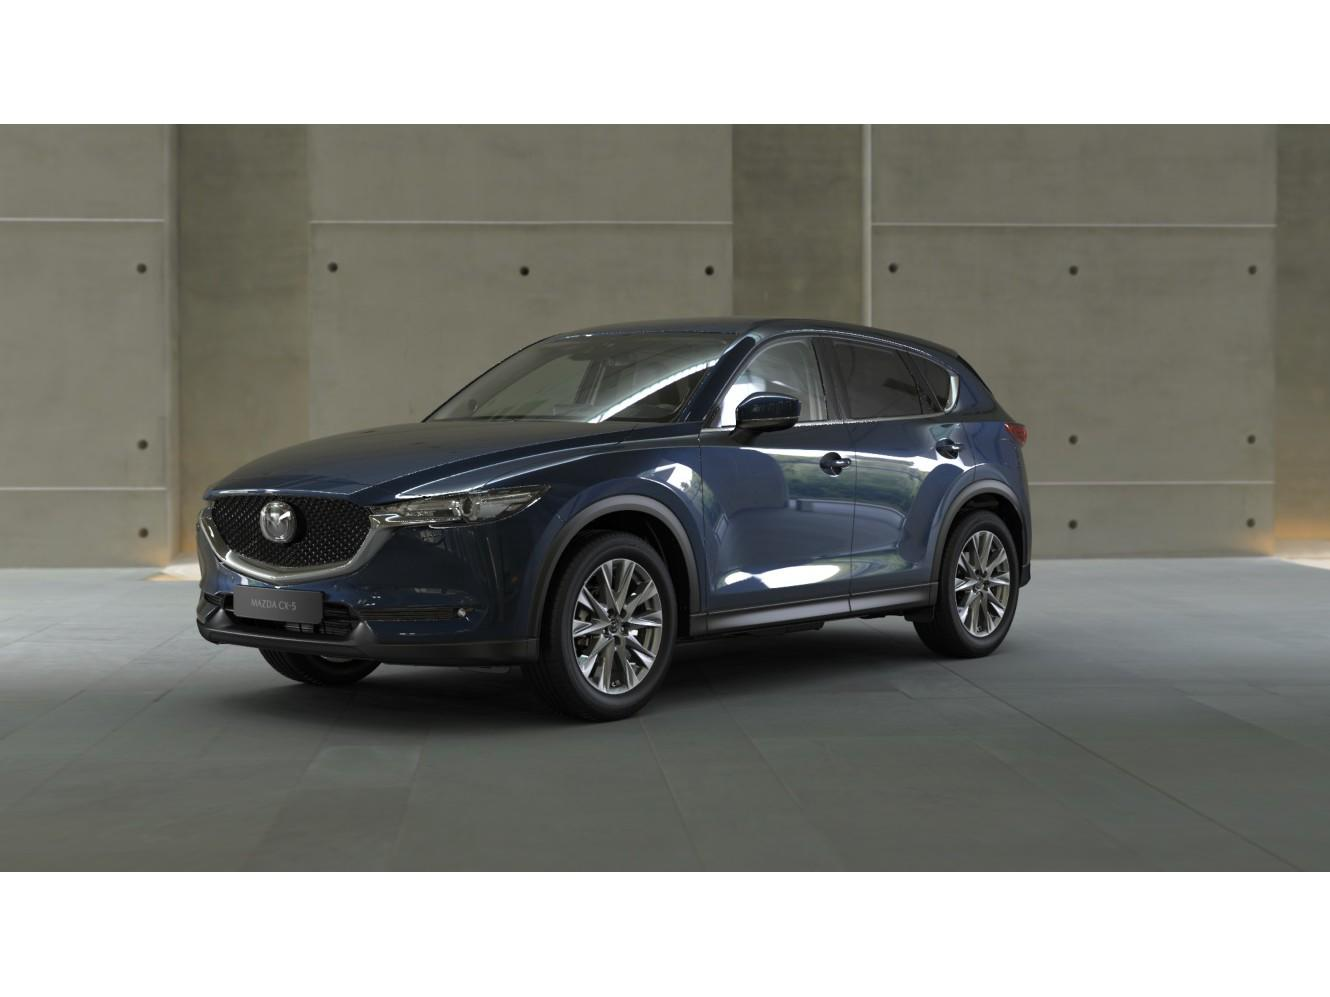 Mazda Cx-5 2.0 skyactiv-g 165 business luxury, wit leer